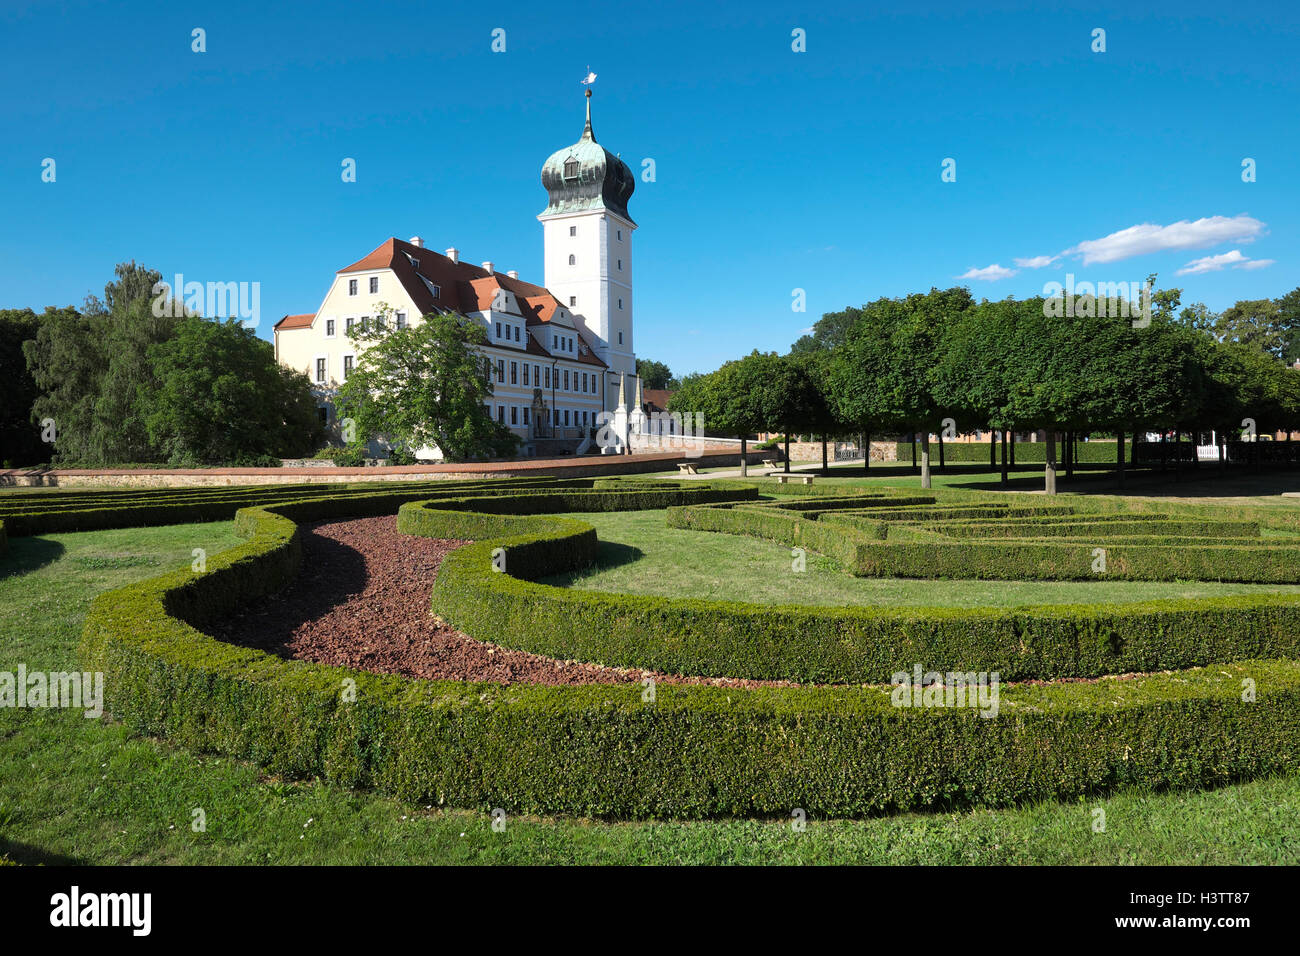 Baroque Castle Delitzsch Delitzsch Saxony Germany Stock Photo